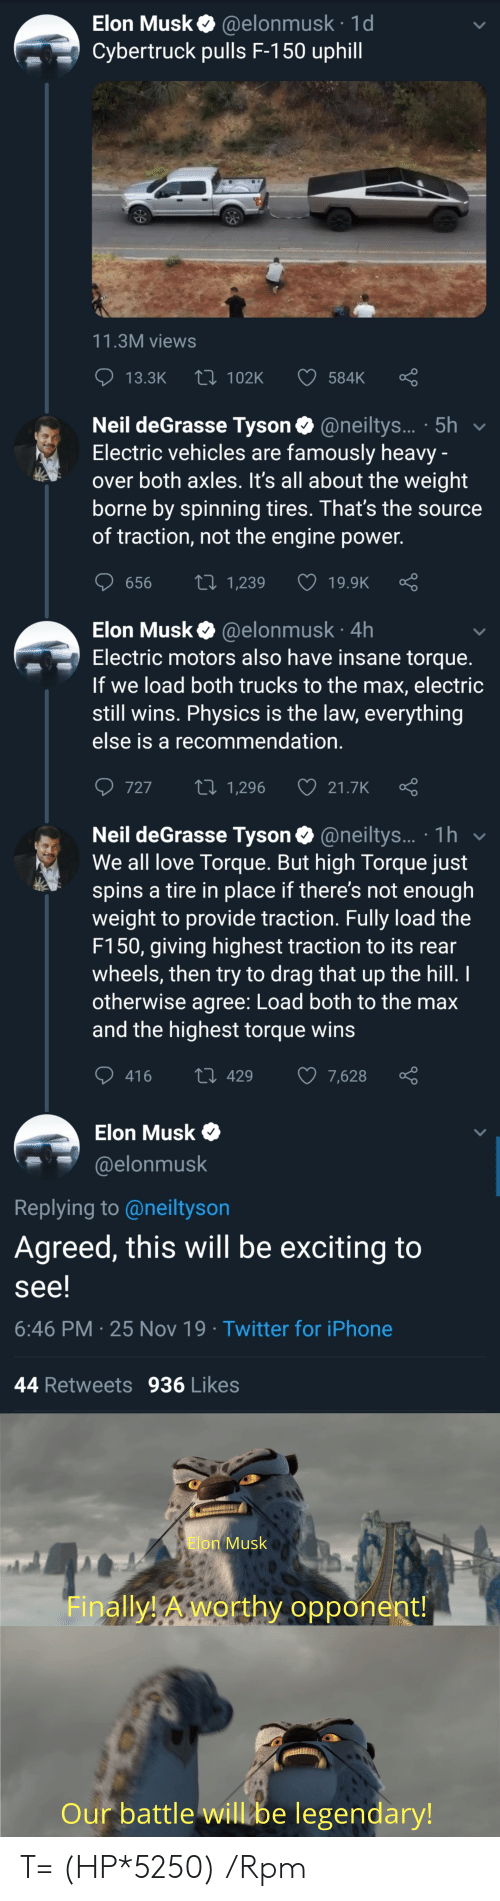 Iphone, Love, and Neil deGrasse Tyson: Elon Musk @elonmusk 1d  Cybertruck pulls F-150 uphill  11.3M views  Li 102K  13.3K  584K  Neil deGrasse Tyson @neiltys... 5h  Electric vehicles are famously heavy -  over both axles. It's all about the weight  borne by spinning tires. That's the source  of traction, not the engine power.  ti 1,239  656  19.9K  @elonmusk 4h  Electric motors also have insane torque.  If we load both trucks to the max, electric  still wins. Physics is the law, everything  Elon Musk  else is a recommendation.  727  2i 1,296  21.7K  Neil deGrasse Tyson@neiltys... 1h  We all love Torque. But high Torque just  spins a tire in place if there's not enough  weight to provide traction. Fully load the  F150, giving highest traction to its rear  wheels, then try to drag that up the hill. I  otherwise agree: Load both to the max  and the highest torque wins  416  429  7,628  Elon Musk  @elonmusk  Replying to @neiltyson  Agreed, this will be exciting to  see!  6:46 PM 25 Nov 19 Twitter for iPhone  44 Retweets  936 Likes  Elon Musk  Finally!Aworthy opponent!  Our battle will be legendary! T= (HP*5250) /Rpm